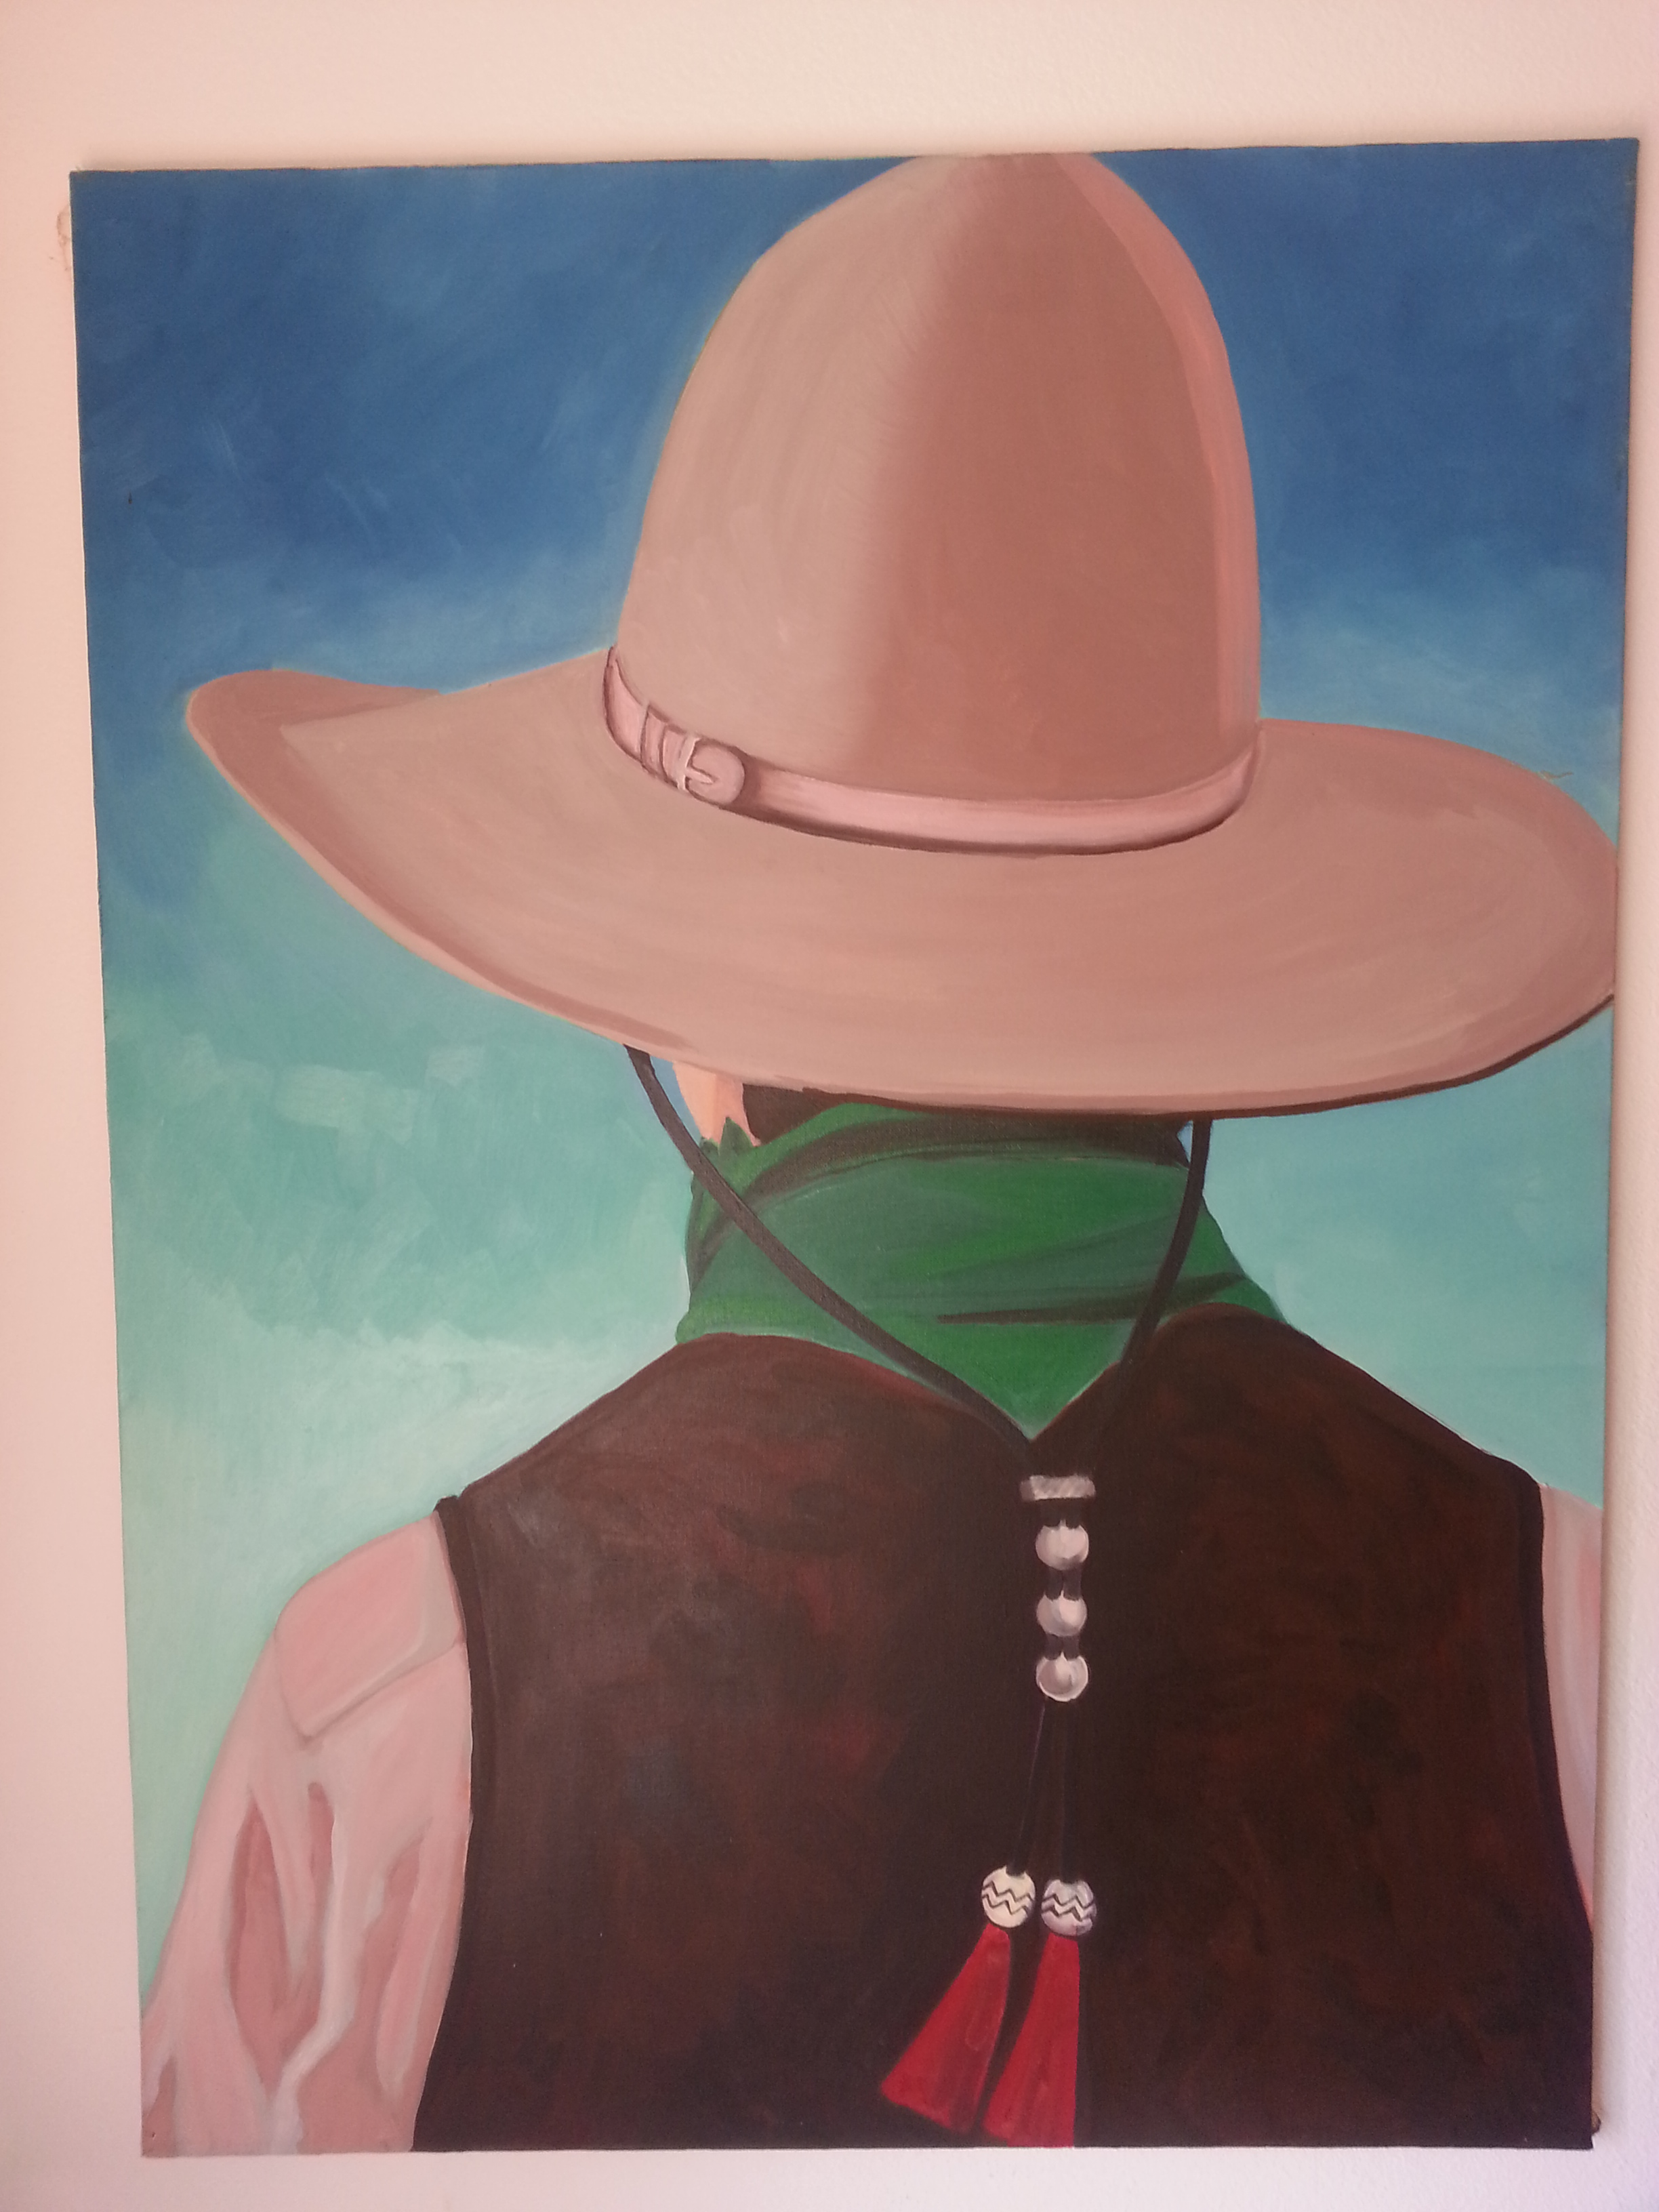 The Man in The Hat 2 – SOLD